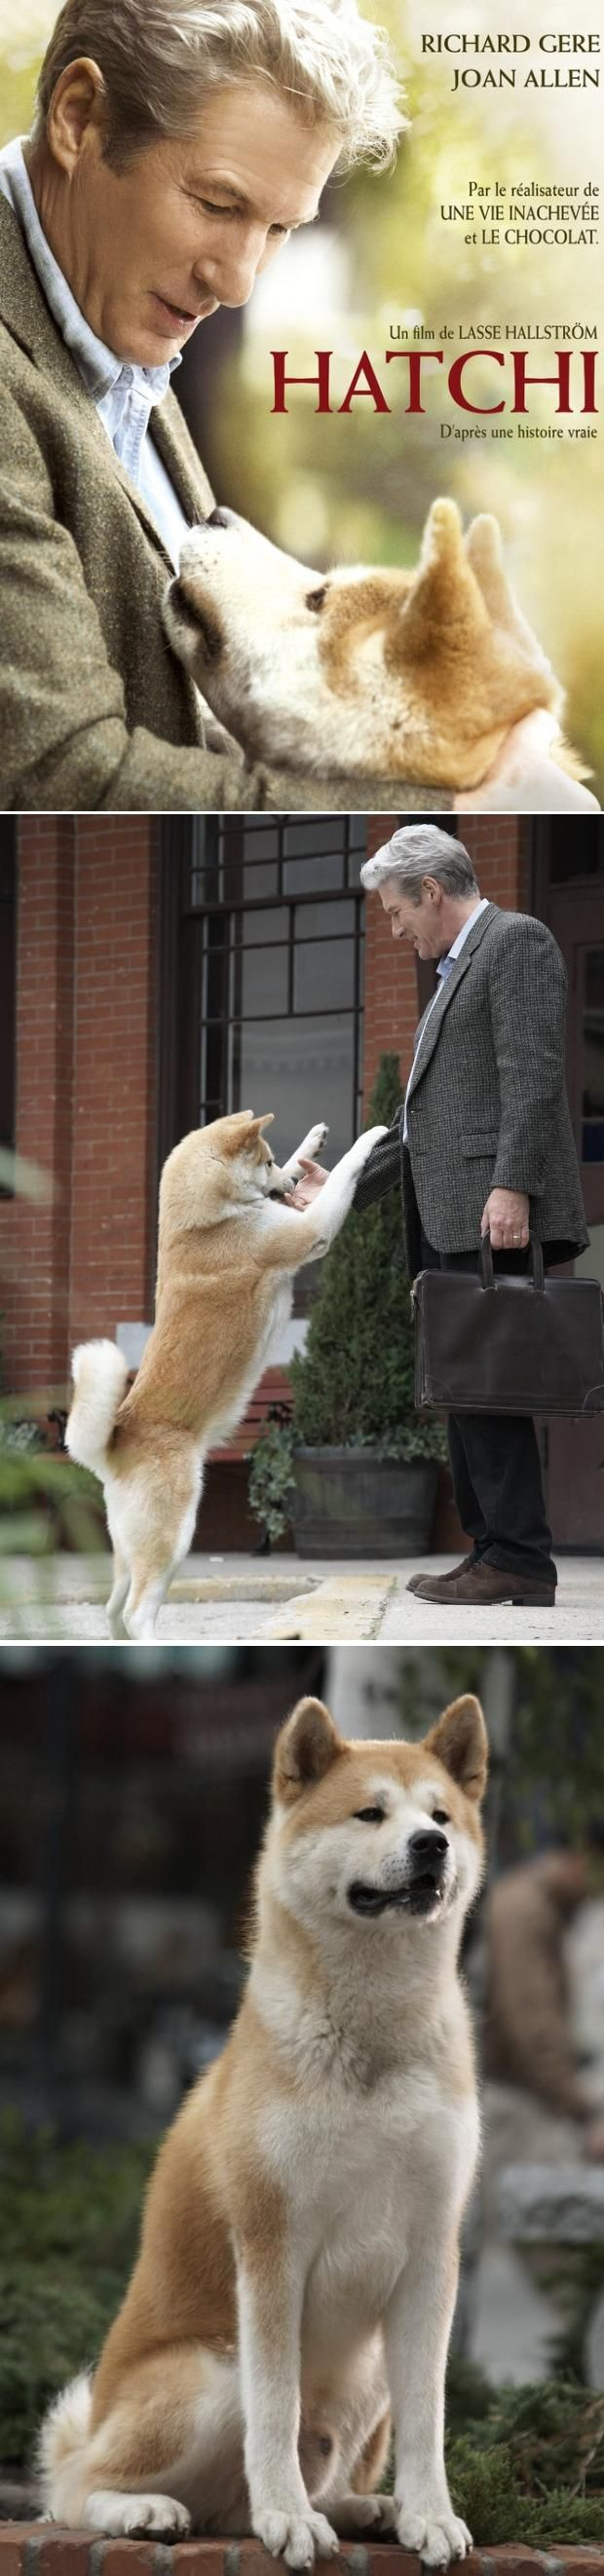 'Hatchi' a true story.  Hatchi waited at the train station for nearly ten years for his master to return from work. Starred Richard Gere.